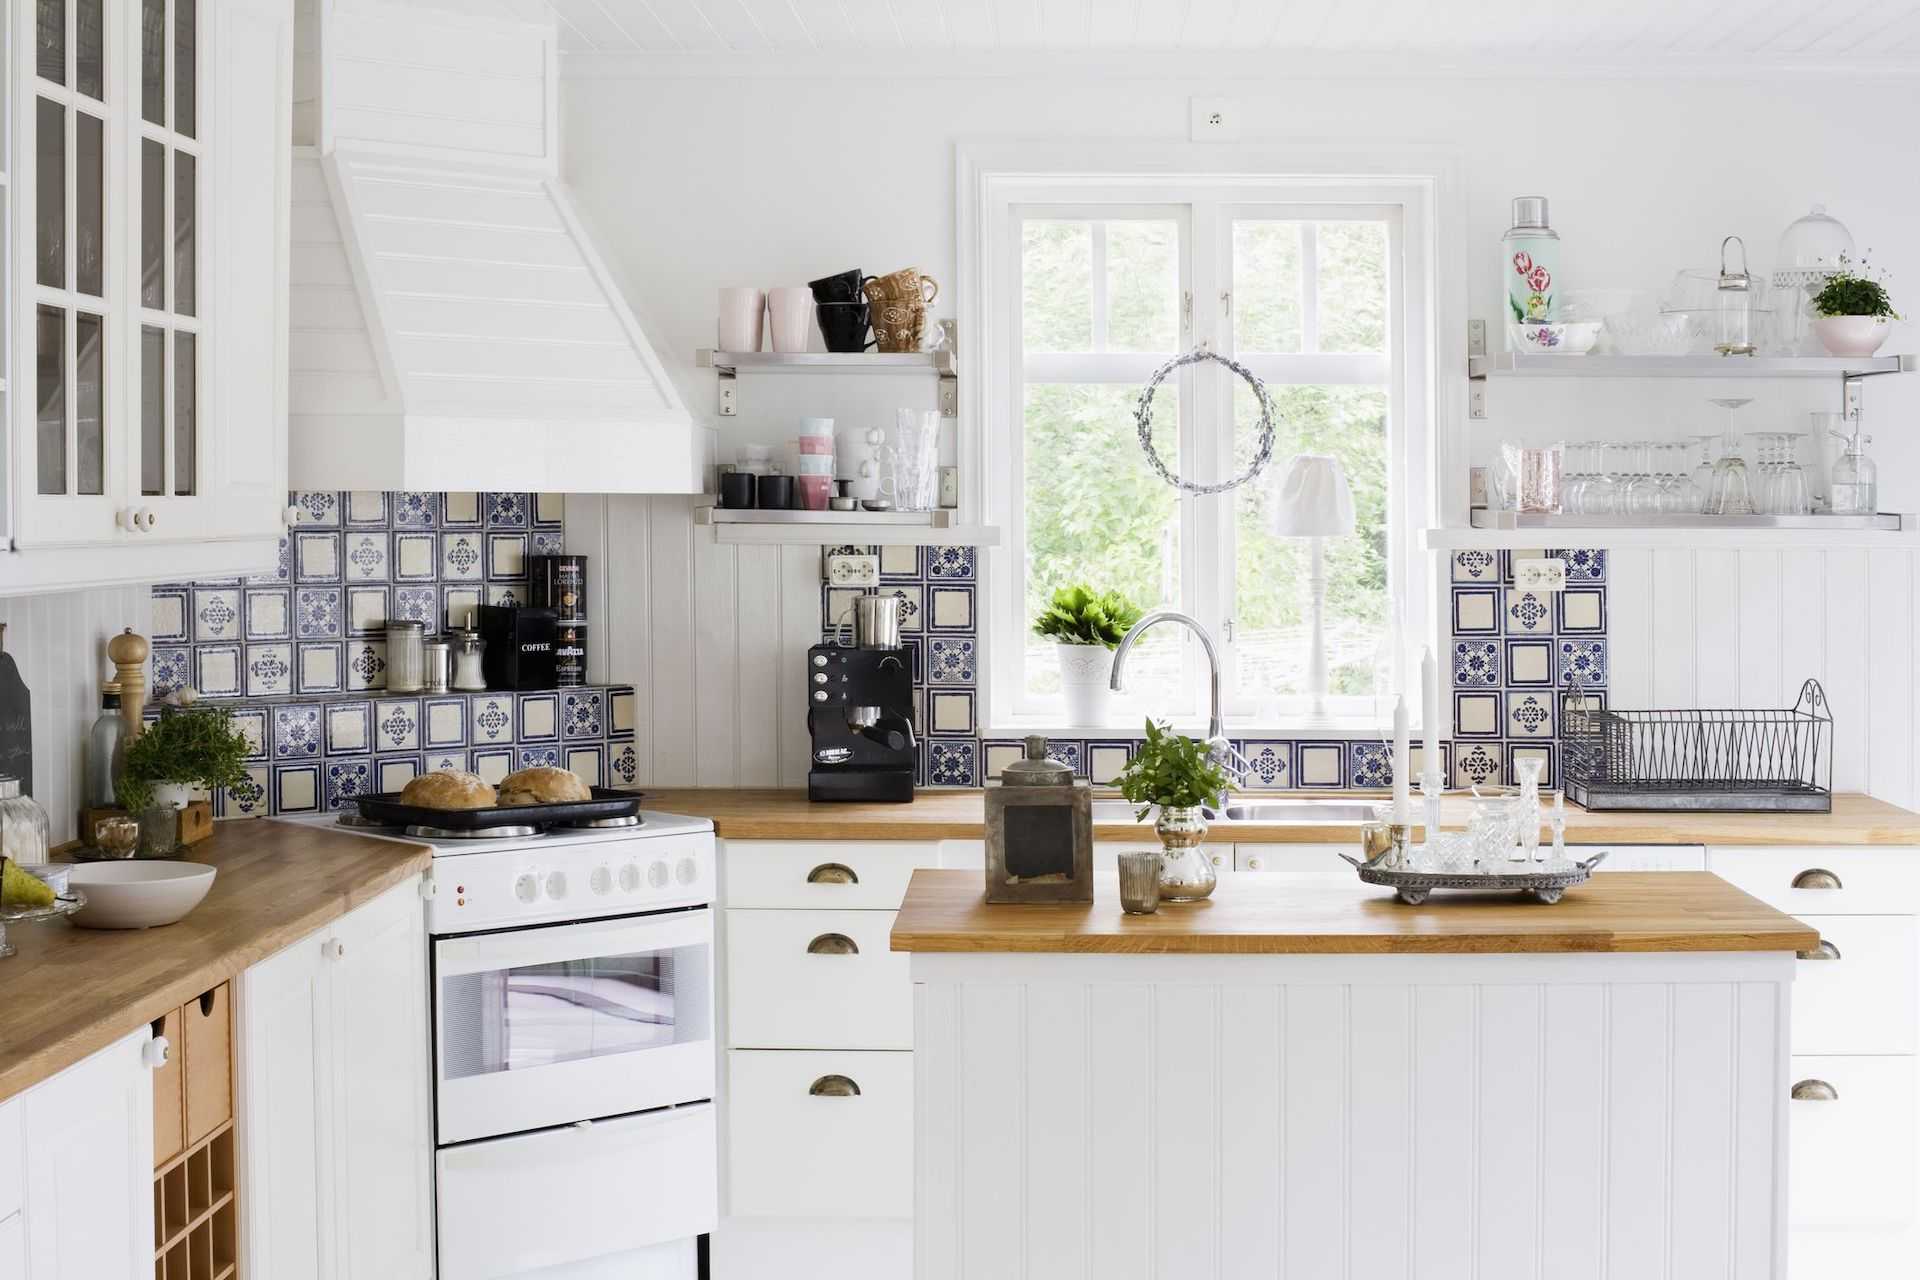 Traditional Spanish backsplash tiles give the Scandinavian kitchen top a textured effect